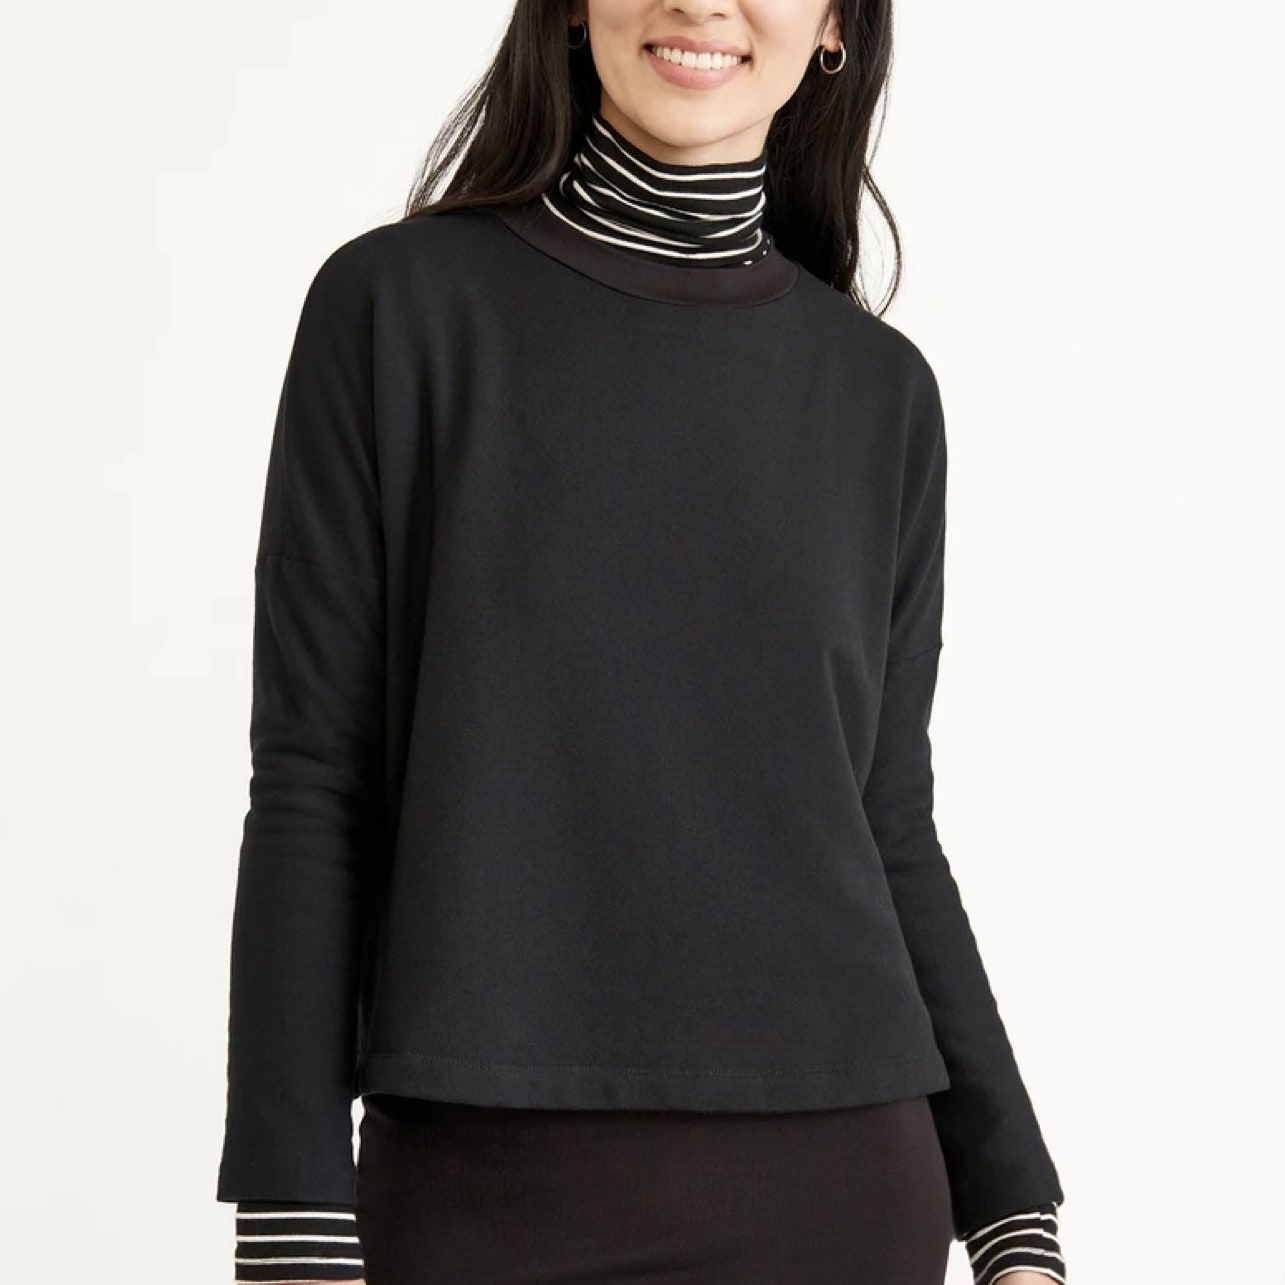 model wearing black sweater with black and white striped turtleneck underneath